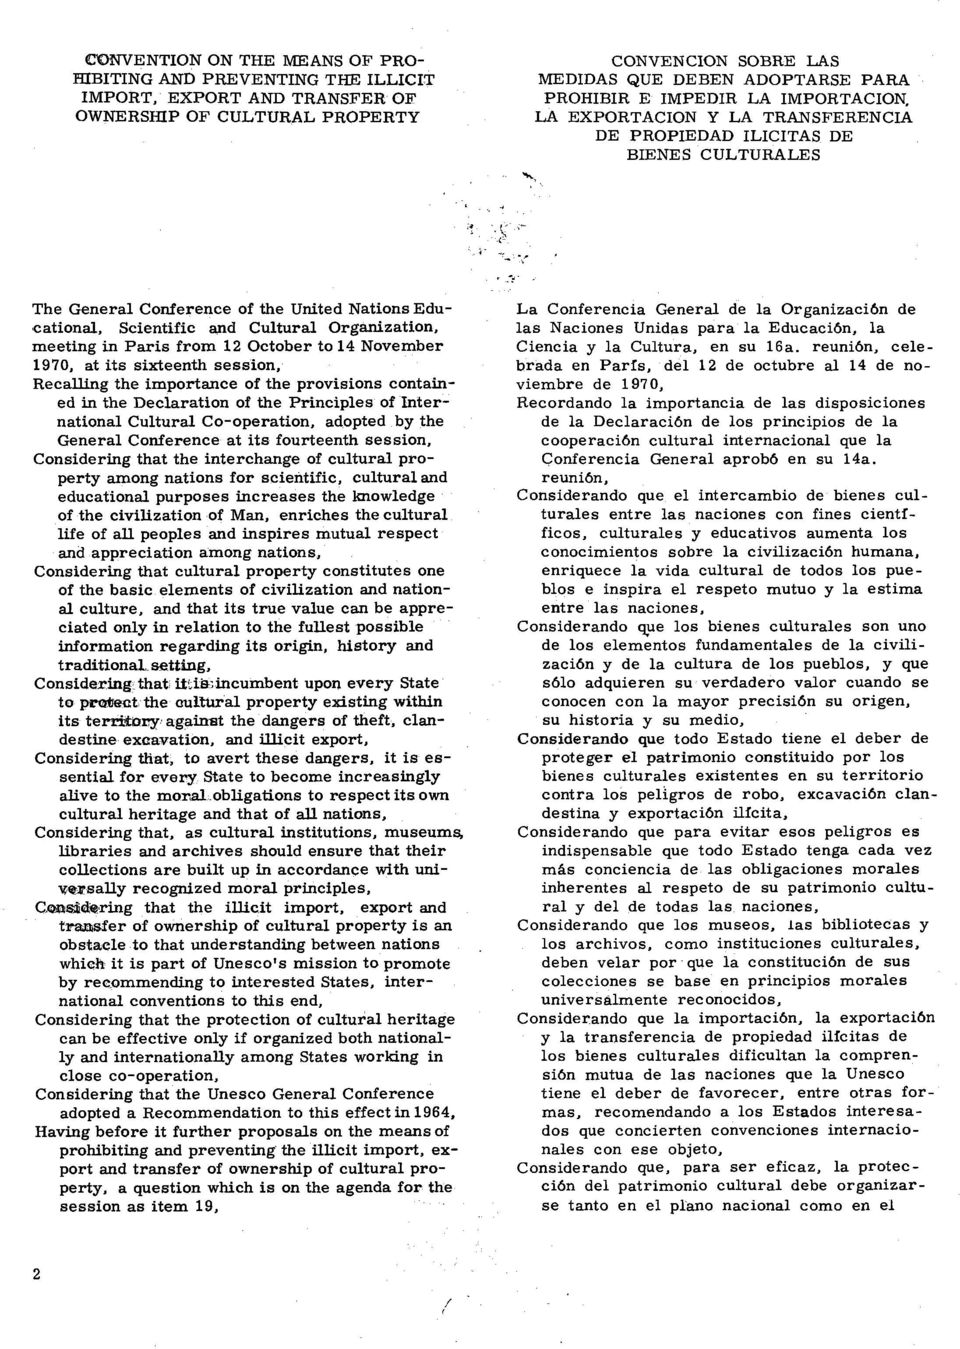 c < ' ( 1- I, < - -r, -< The General Conference of the United Nations Edu- 'cational, Scientific and Cultural Organization, meeting in Paris from 12 October to 14 November 1970, at its sixteenth